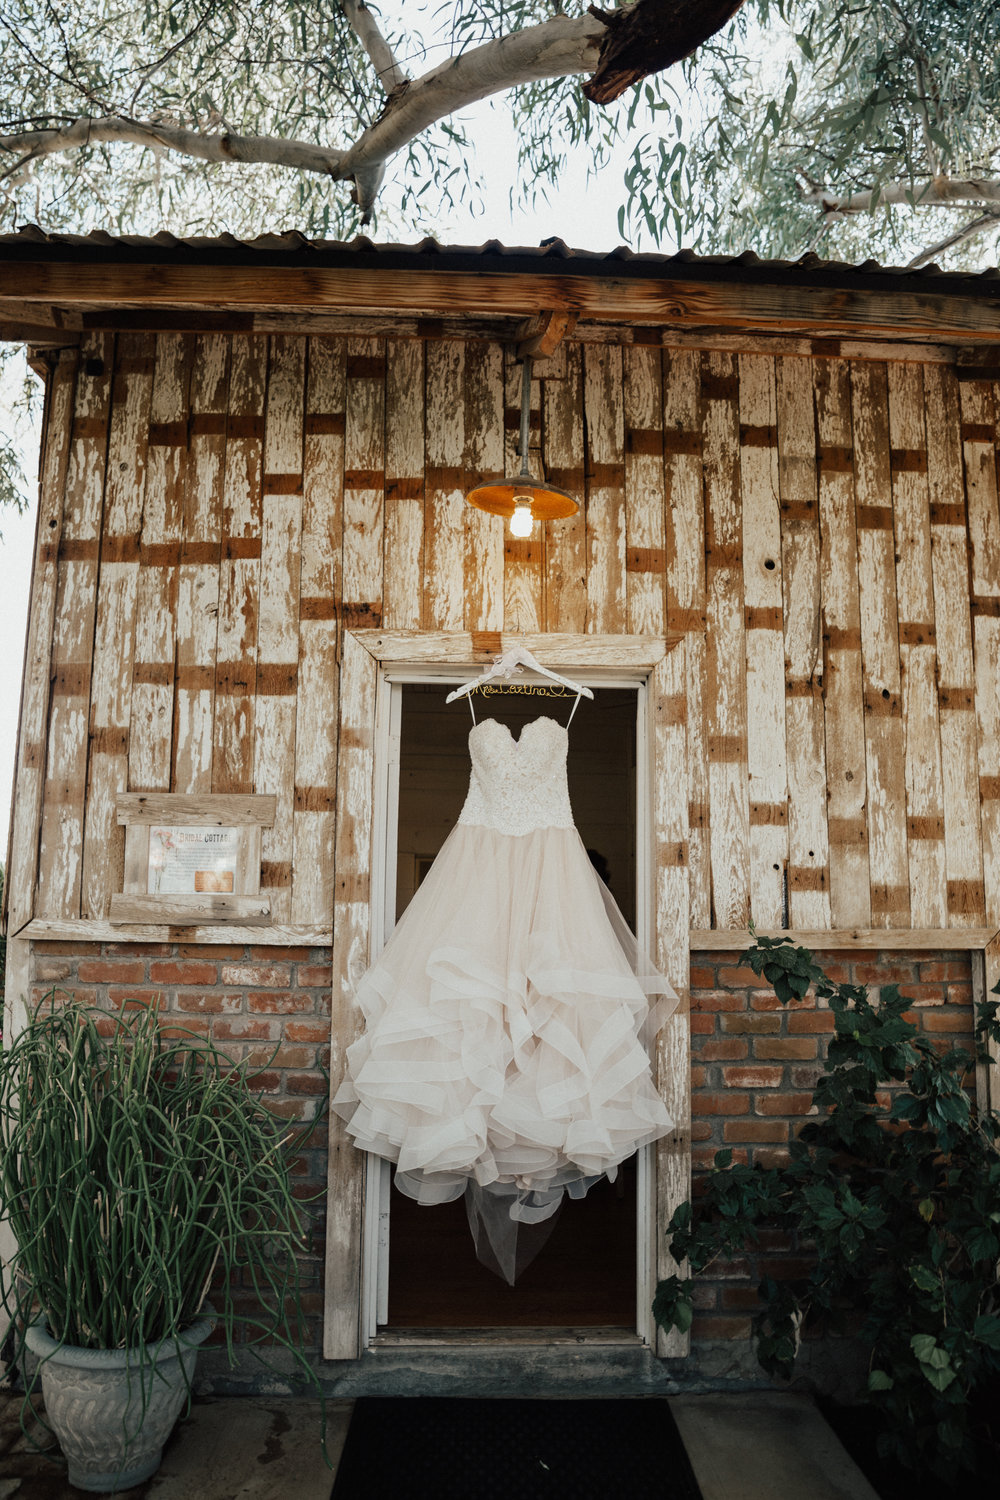 The bride had two wedding dresses, this was wedding dress number one which was just for the ceremony.